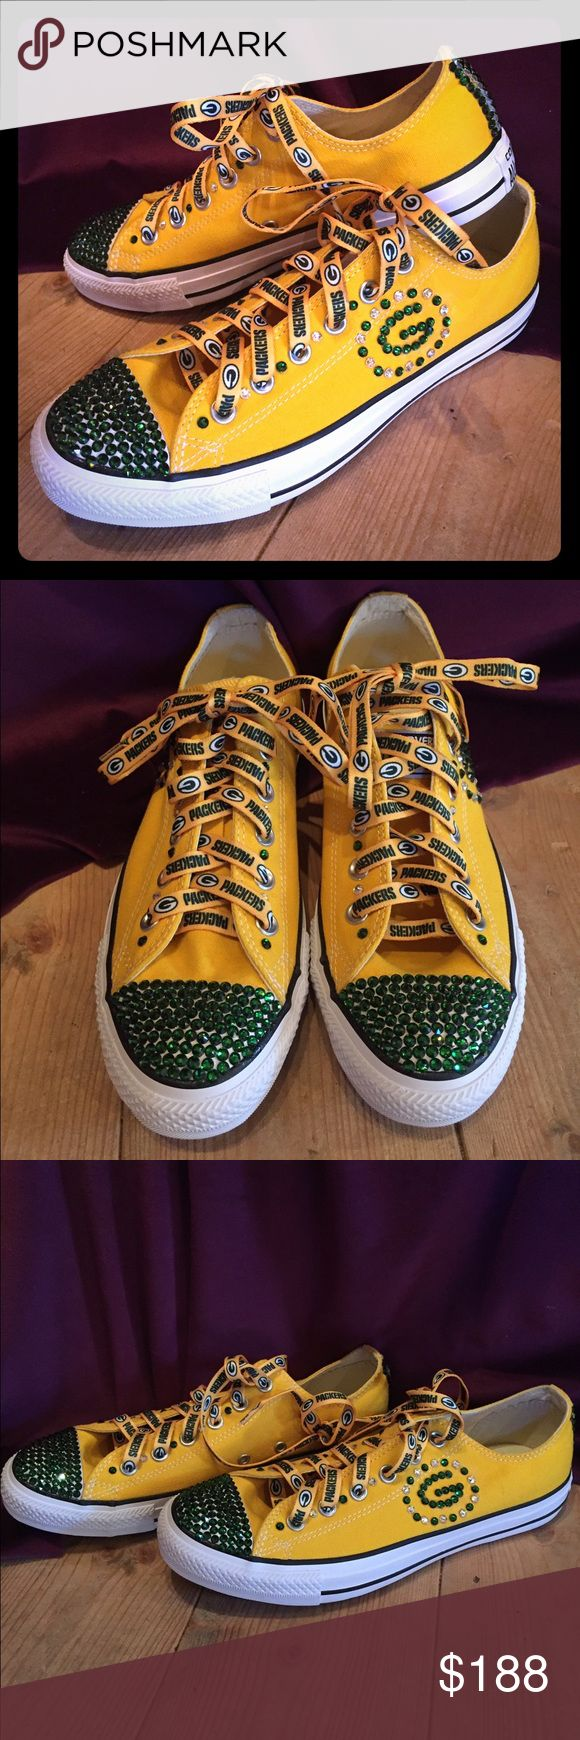 Green Bay Packer Bling Converse Green Bay Packer Bling Converse. Made with Swarovski crystals. Women's size 9. Converse Shoes Sneakers